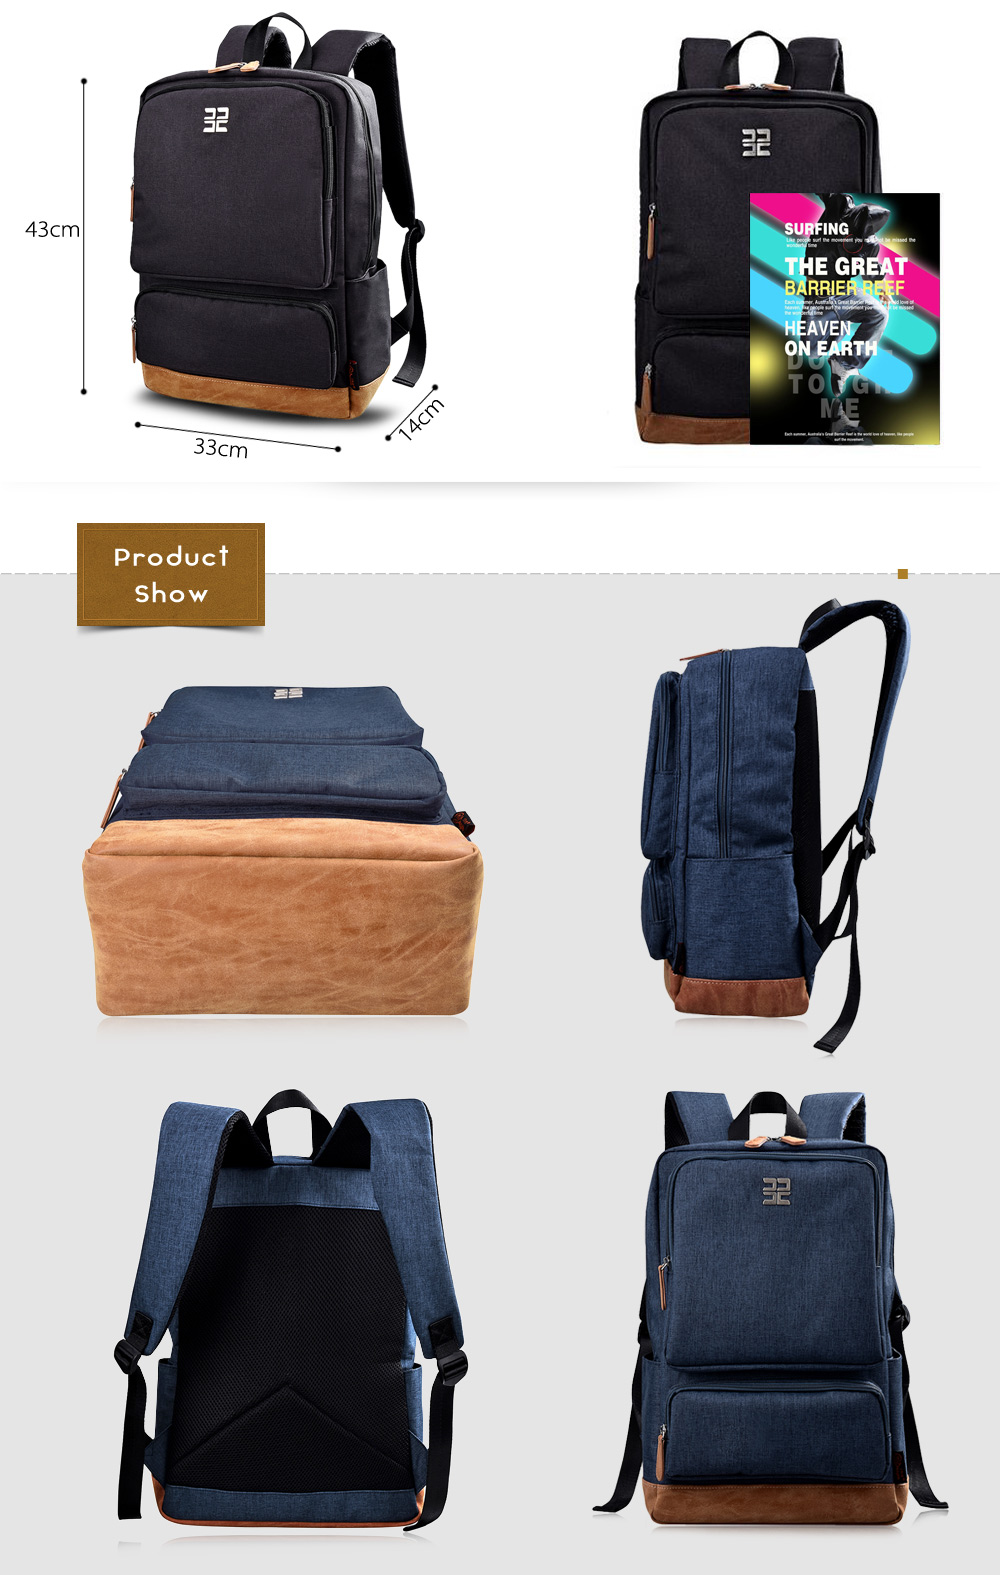 Douguyan 15.6 inch Nylon Laptop Backpack Business Travel Bag